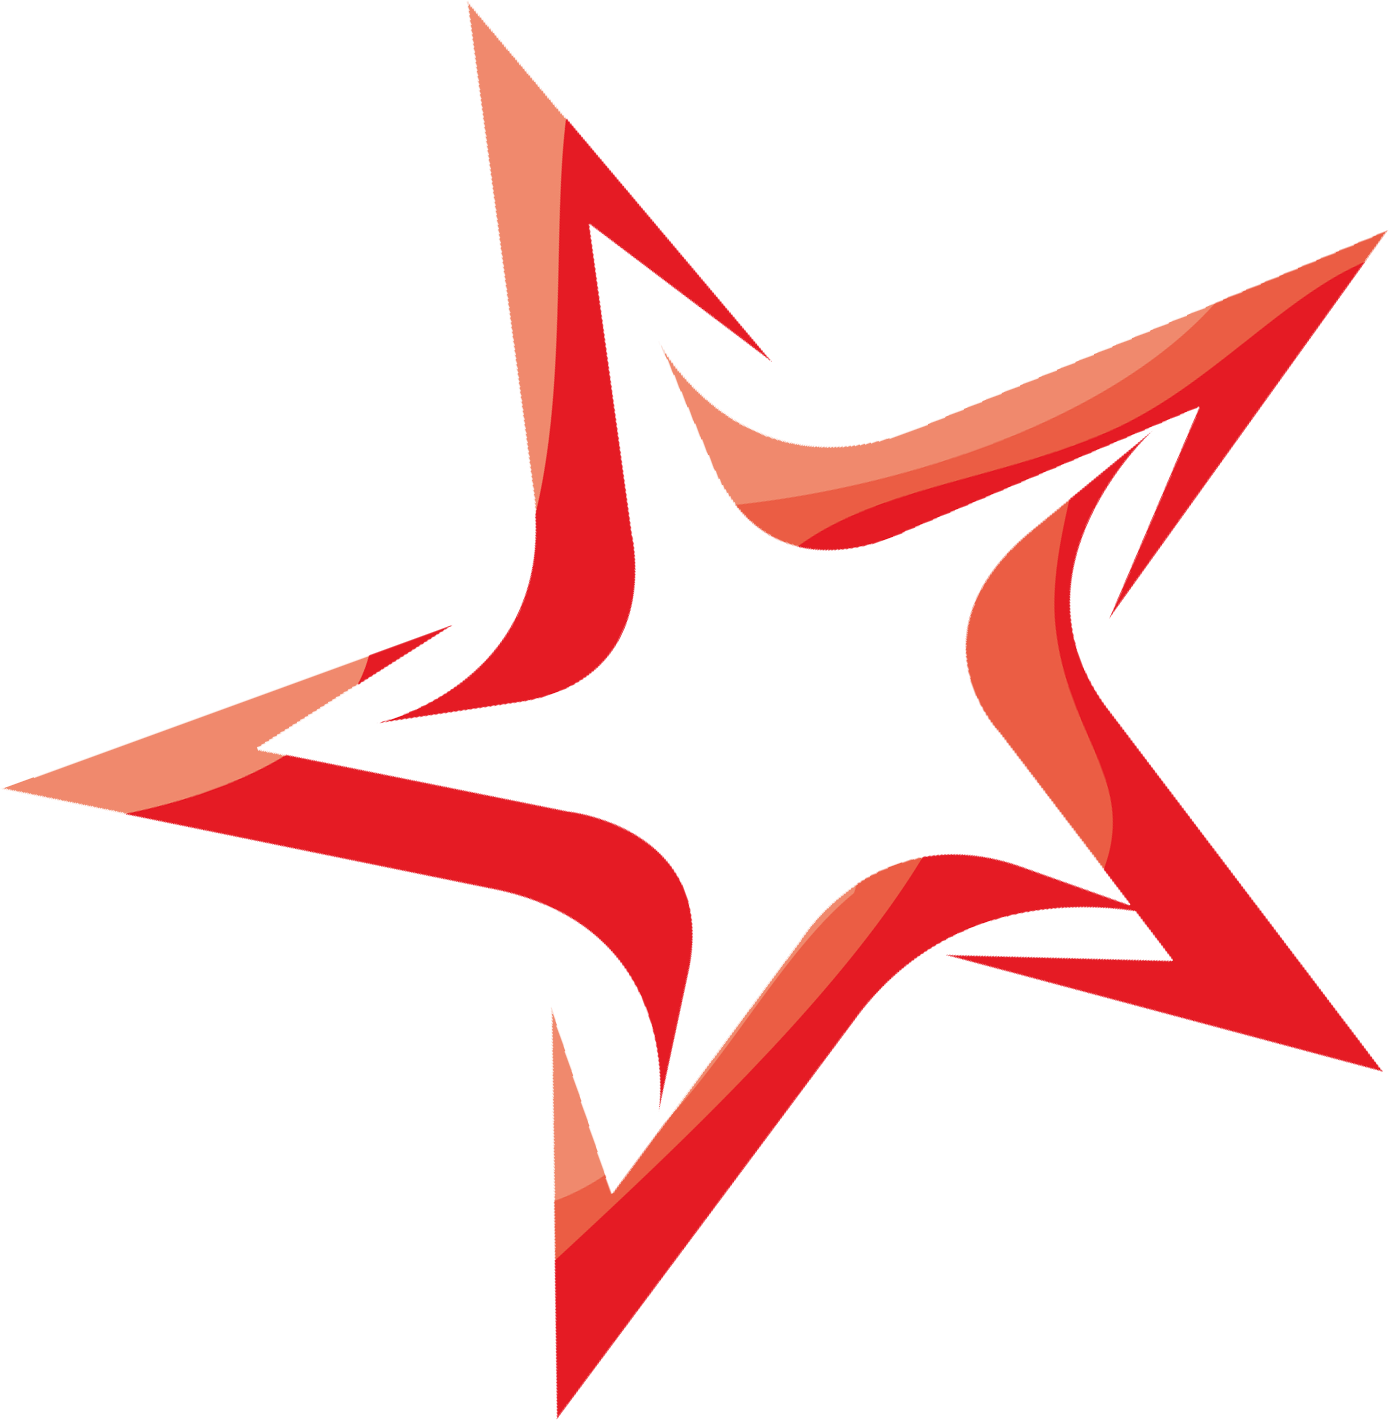 downloaded download free images for red star logo png icons png image ...